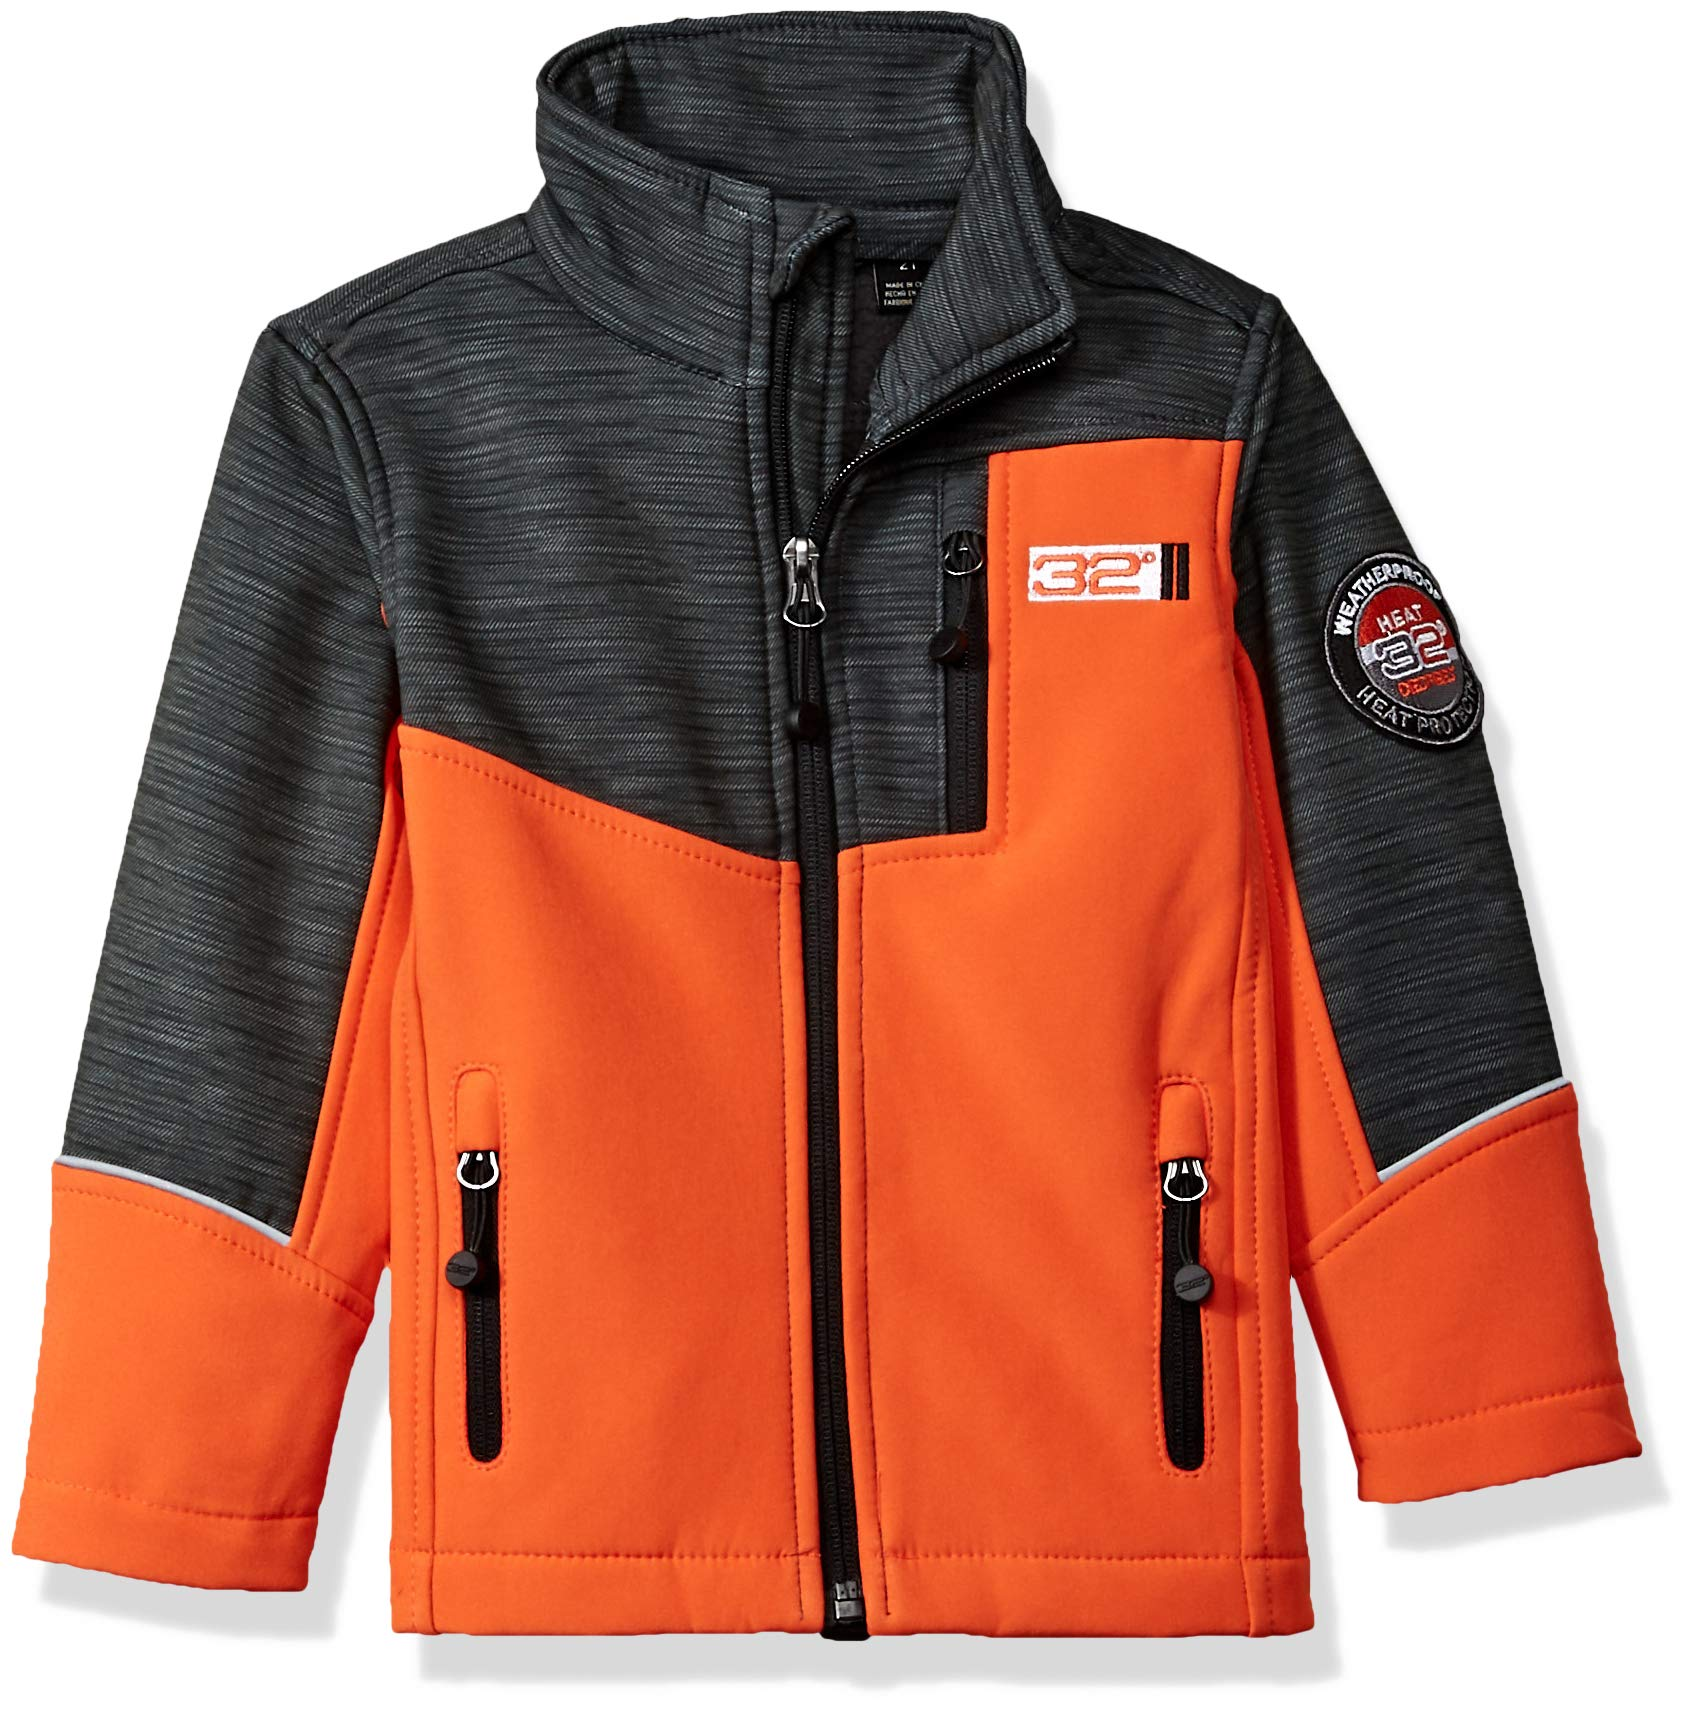 32 DEGREES Weatherproof Weatherproof Little Boys Outerwear Jacket (More Styles Available), Zip Pockets Orange, 4 by 32 DEGREES (Image #1)